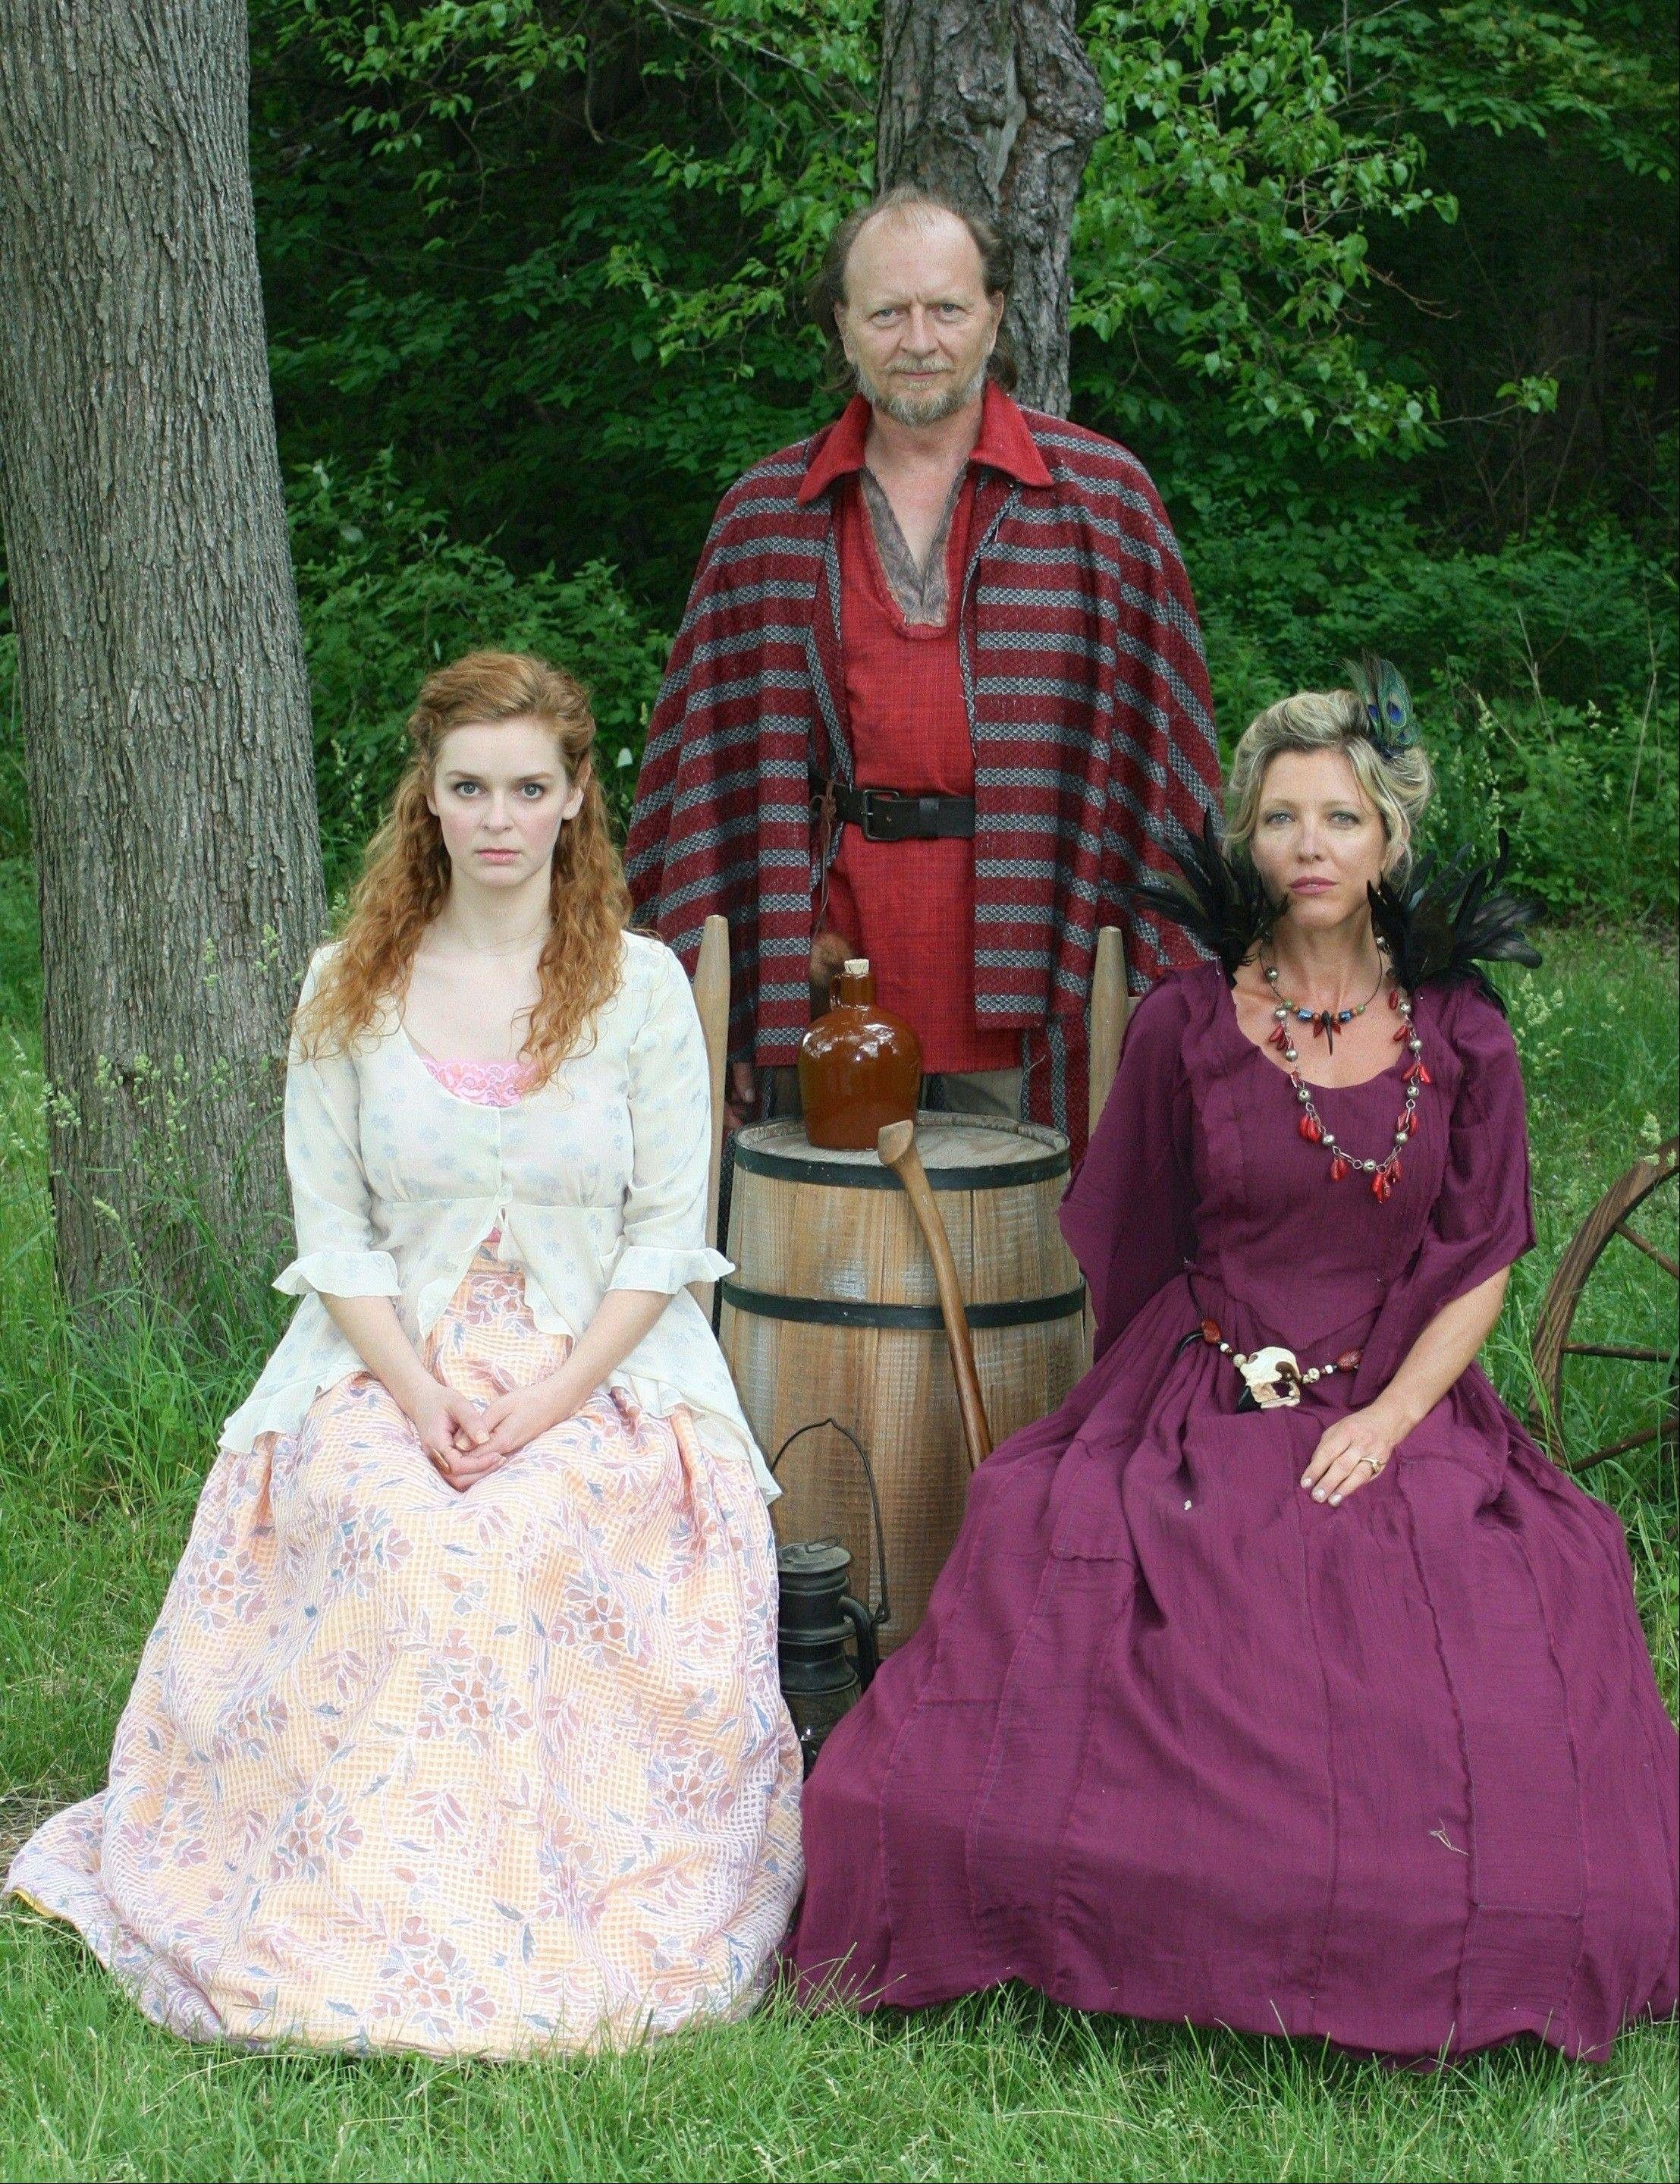 "Princess Imogen (Kate McDermott, left) has incurred the wrath of her father, King Cymbeline (John Milewski), and his Queen (Lia Mortensen) by marrying beneath her class in First Folio Theatre's world premiere adaptation of ""Shakespeare's Cymbeline: A Folk Tale with Music"" at the Mayslake Peabody Estate in Oak Brook."